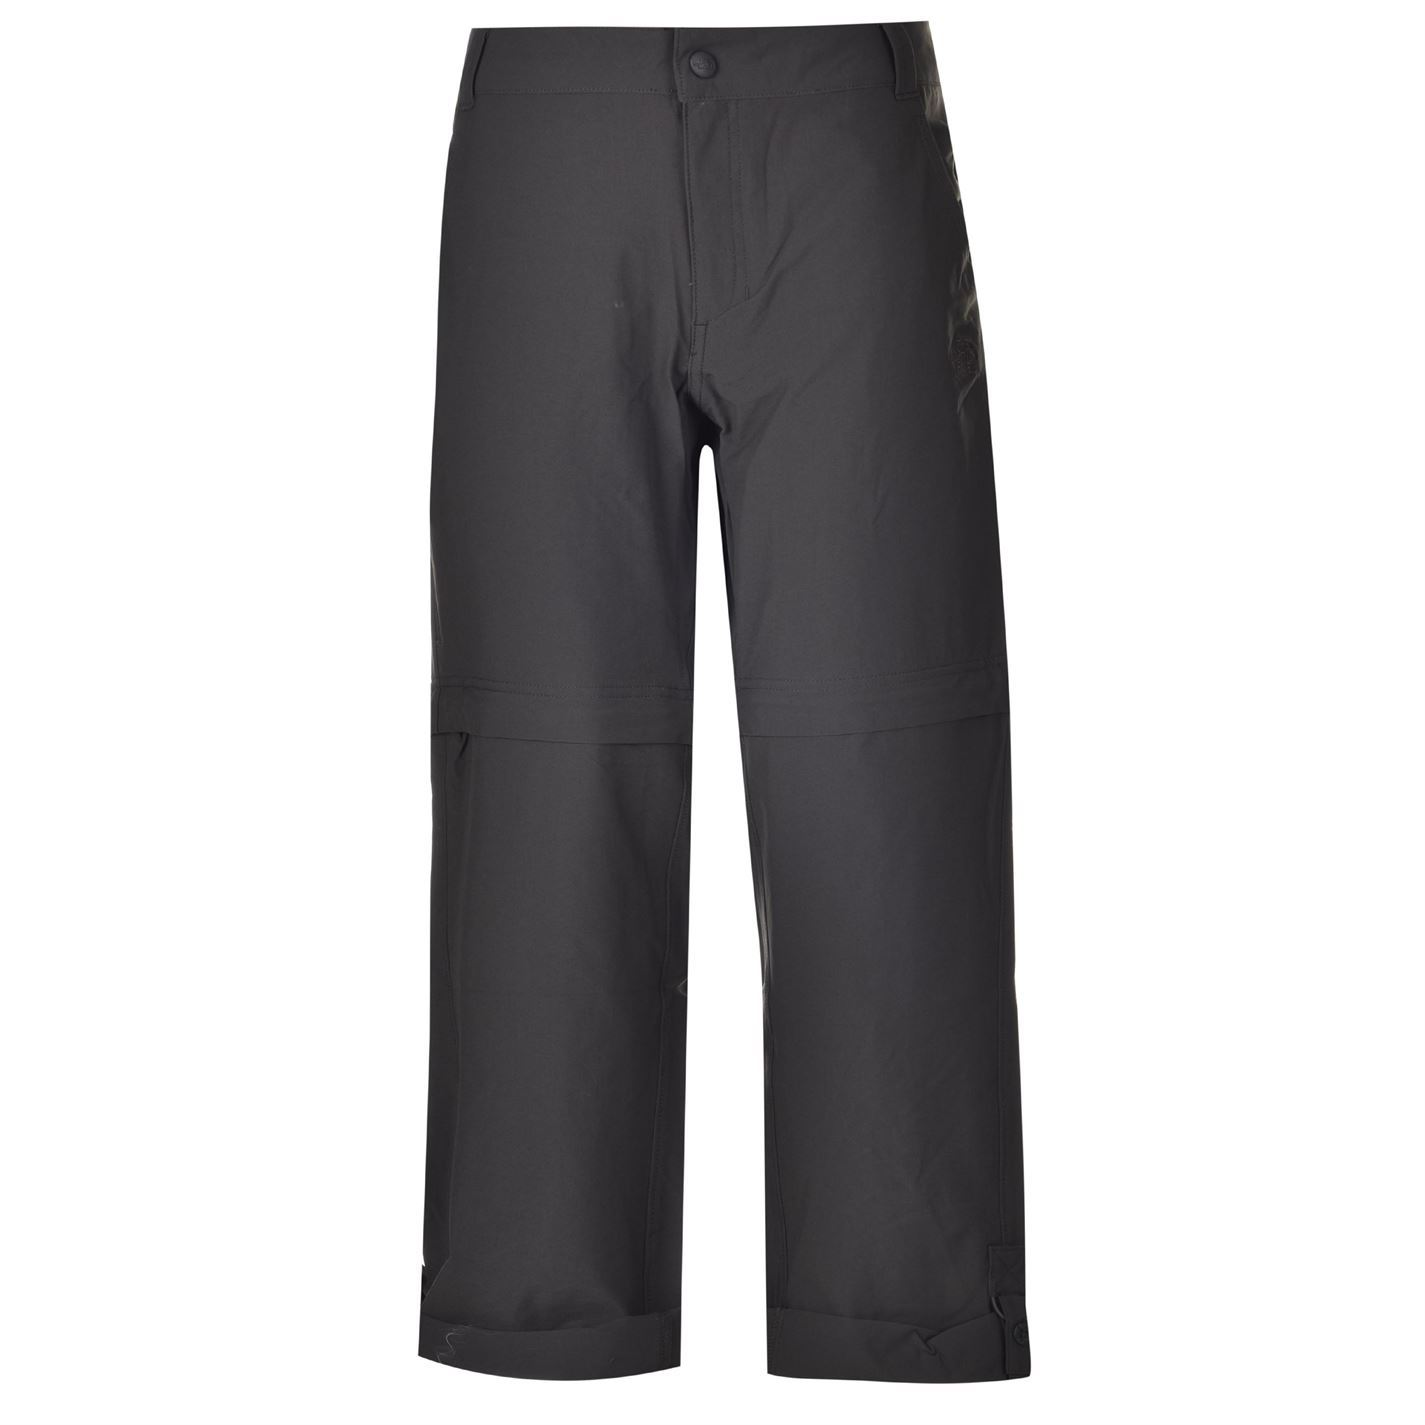 Excellent The North Face Paramount Valley Convertible Hiking Pants  Thumbnail 3